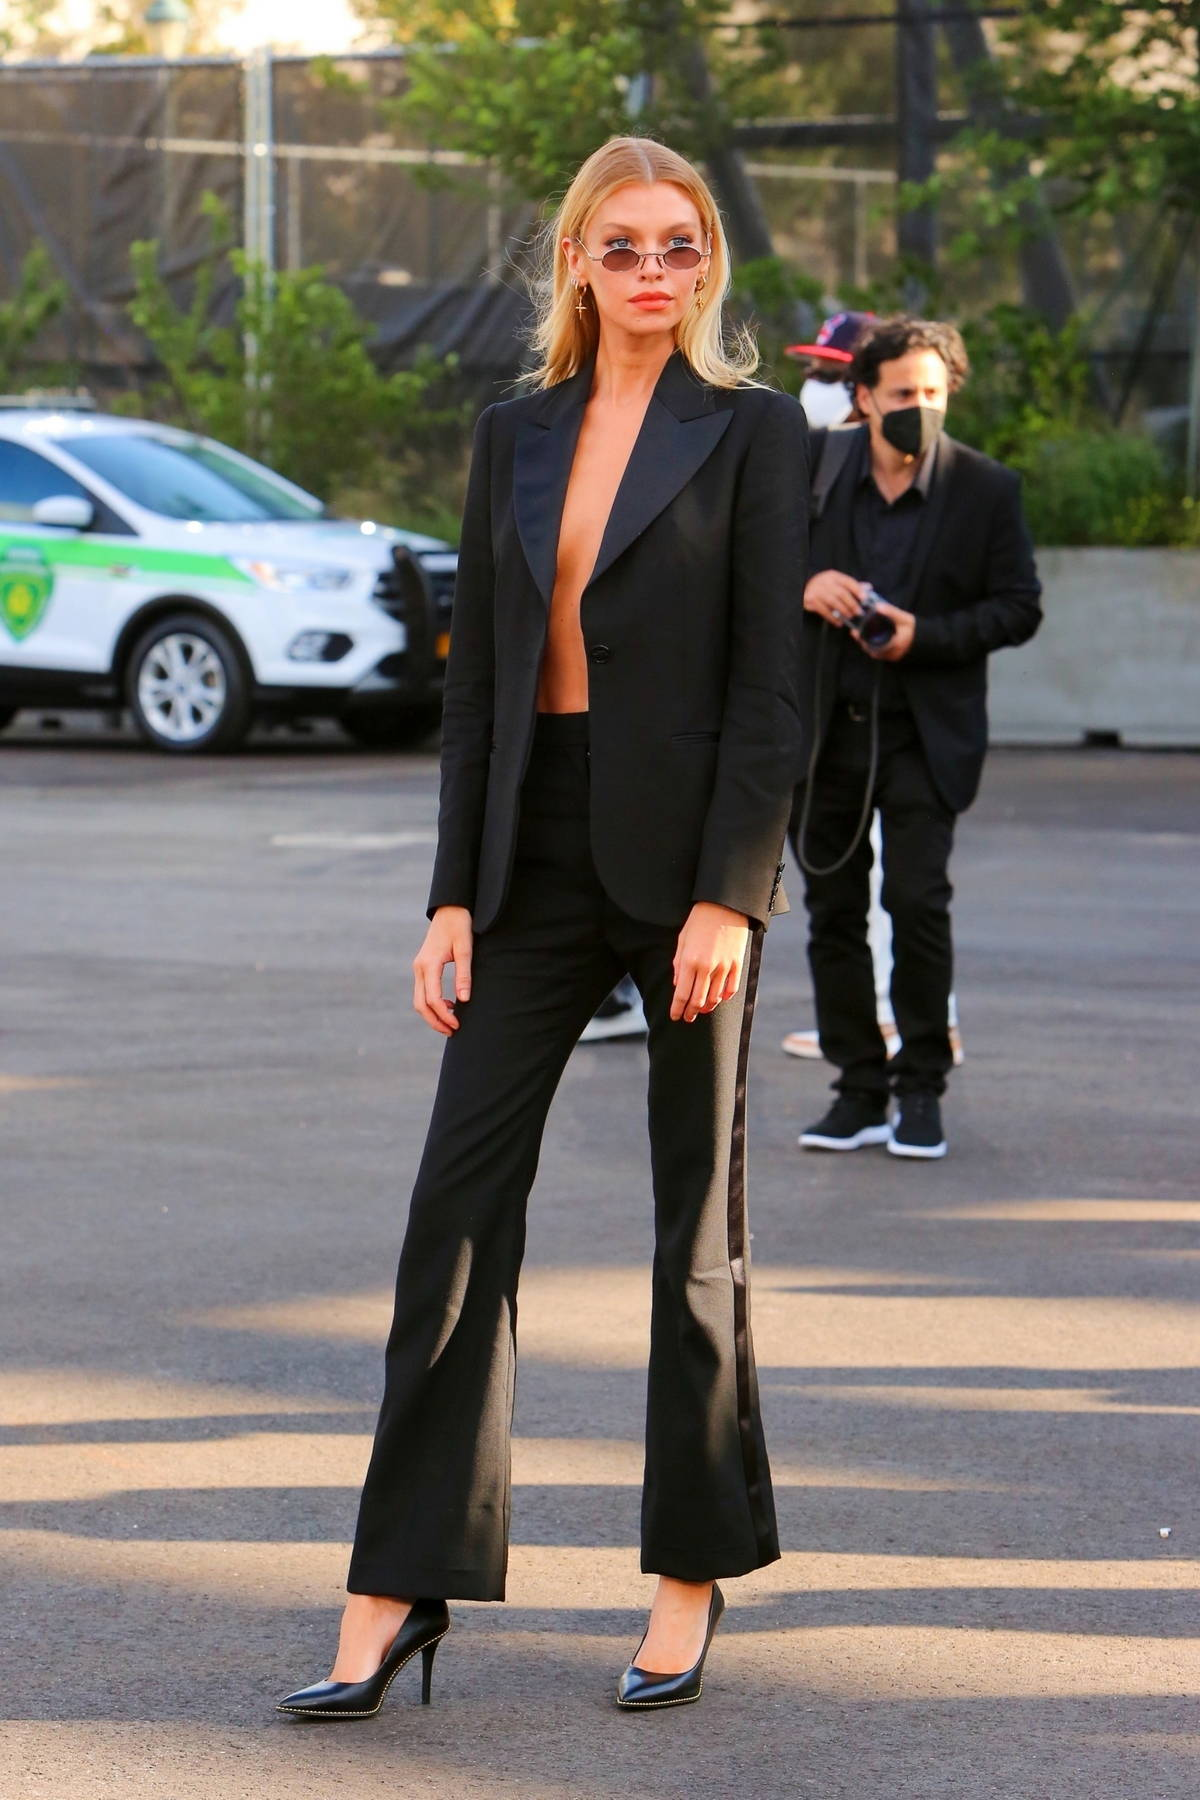 Stella Maxwell attends the Coach Spring-Summer 2022 fashion show during New York Fashion Week in New York City